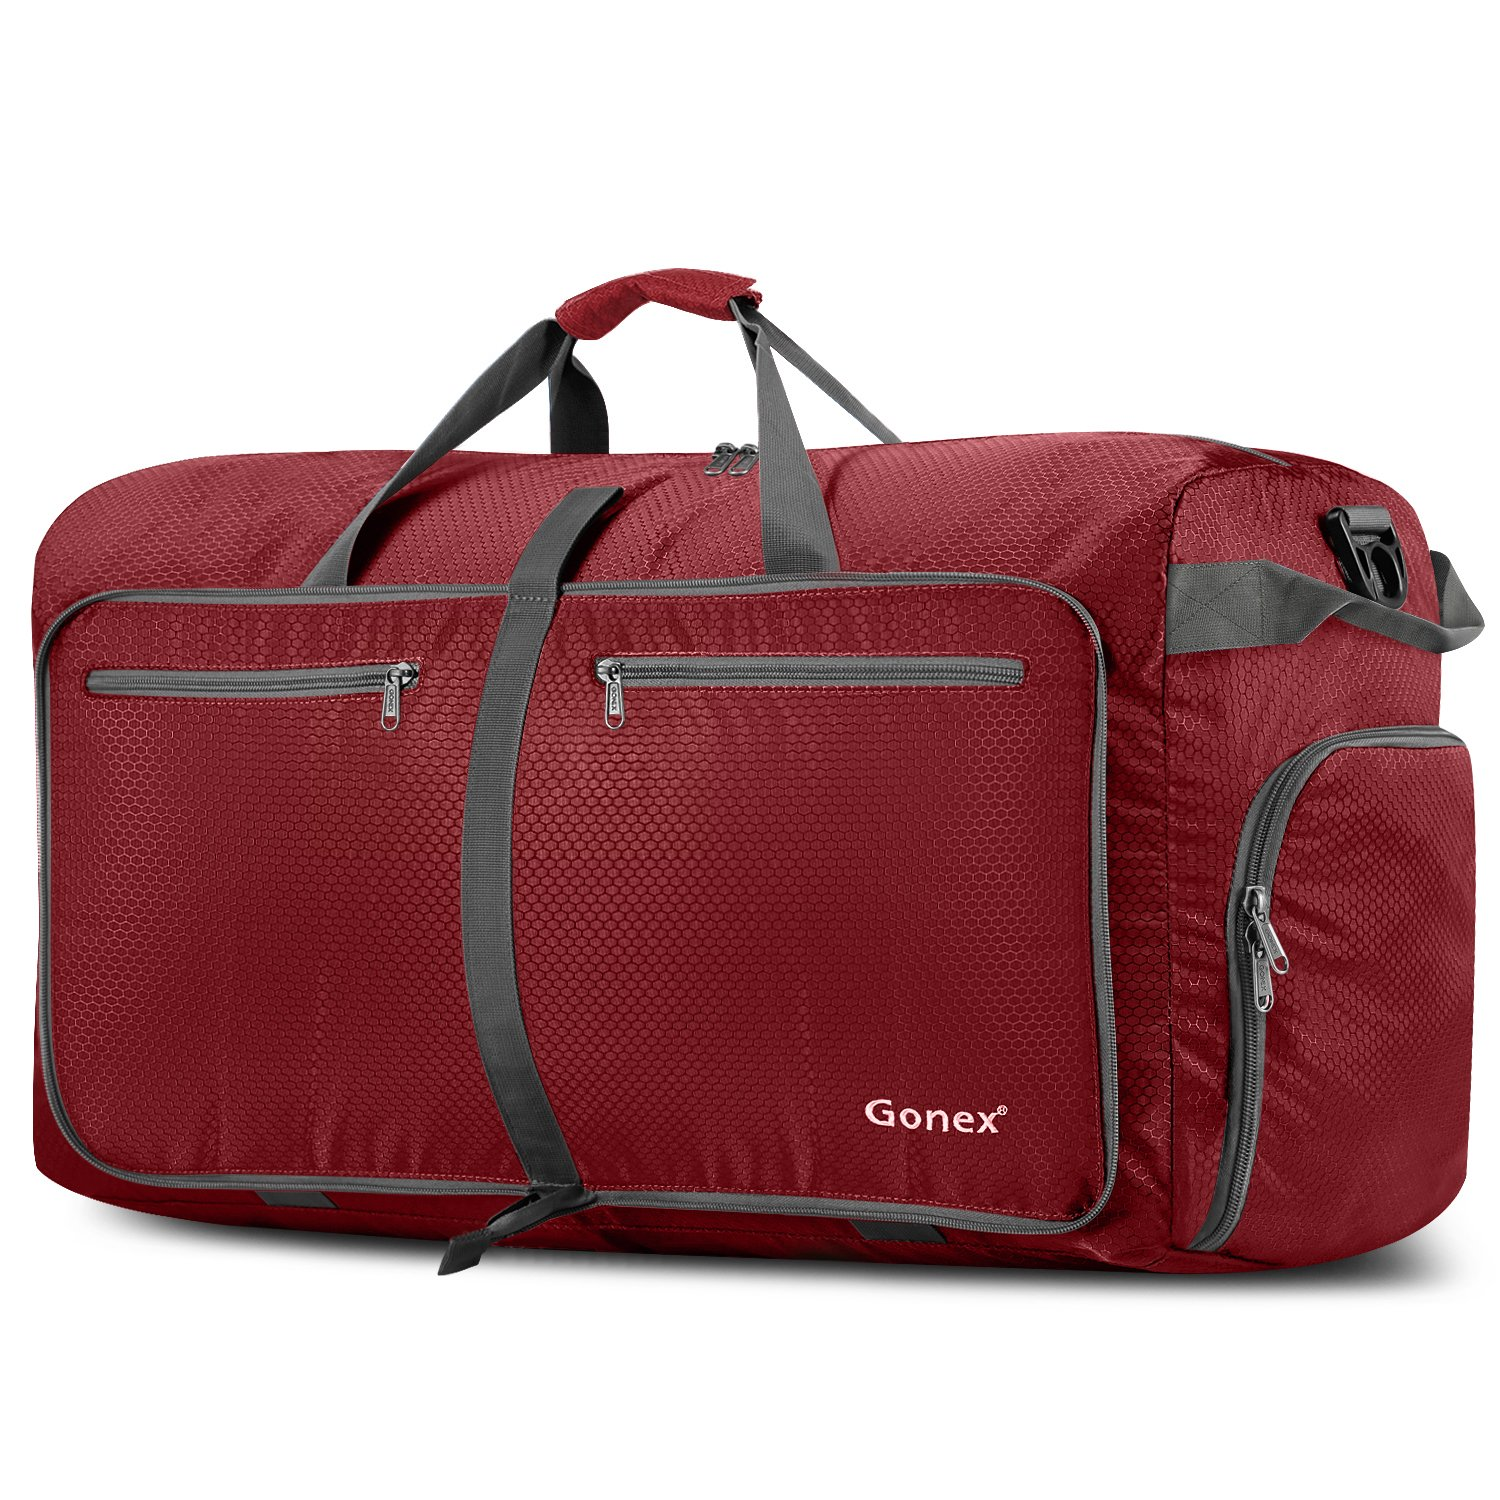 Gonex 100L Foldable Travel Duffel Bag for Luggage Gym Sports, Lightweight Travel Bag with Big Capacity, Water Repellent (Red)